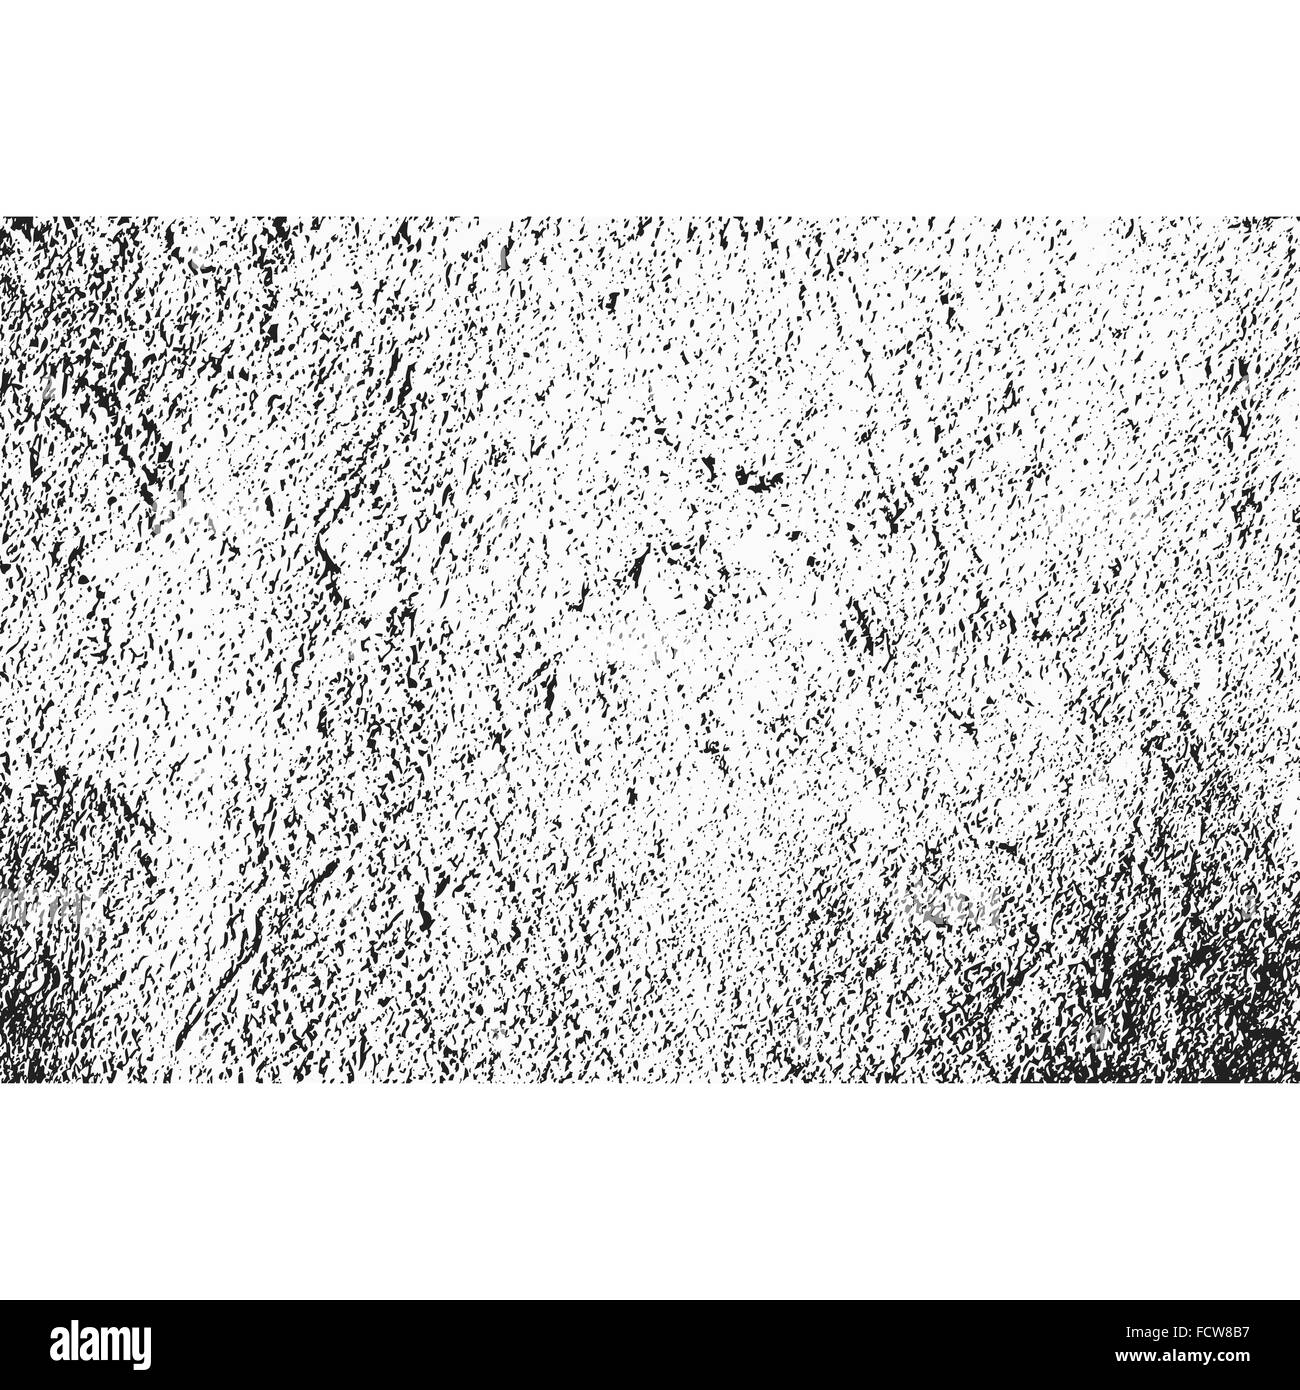 vector grunge monochrome scratch rough dirty wall surface texture background - Stock Image